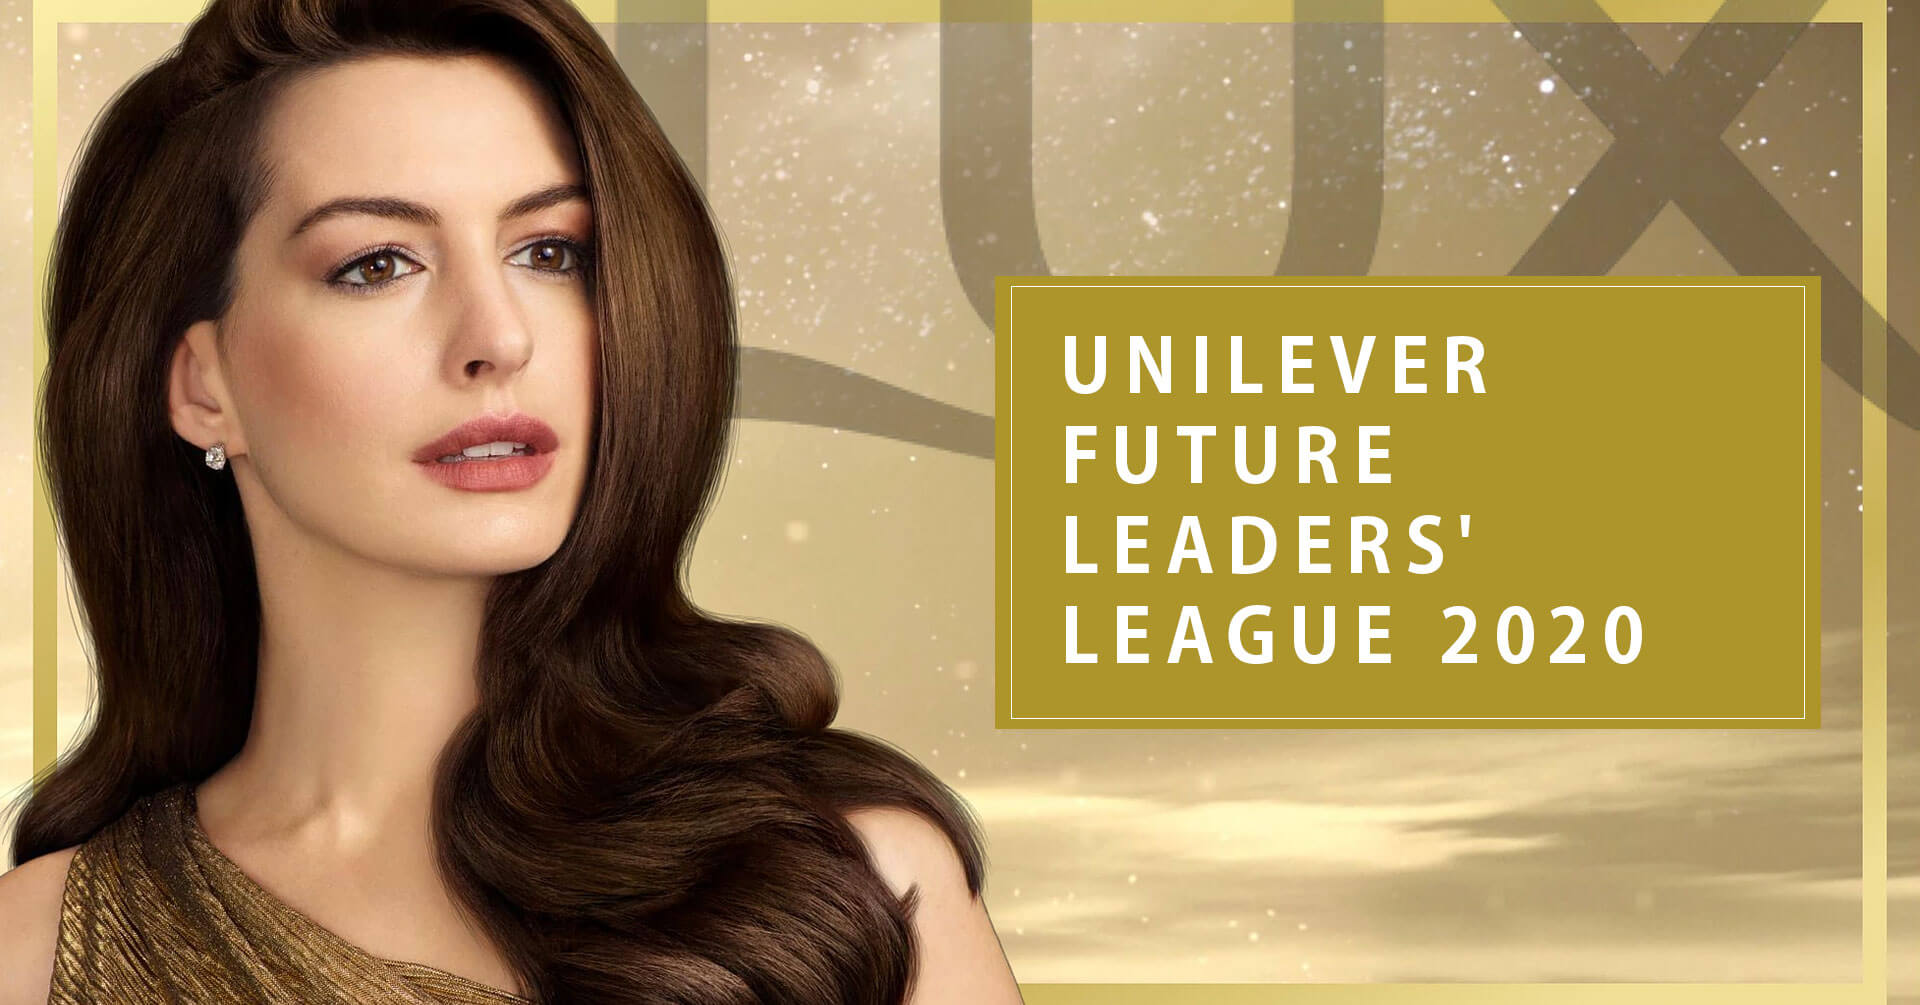 UNILEVER FUTURE LEADERS' LEAGUE2020